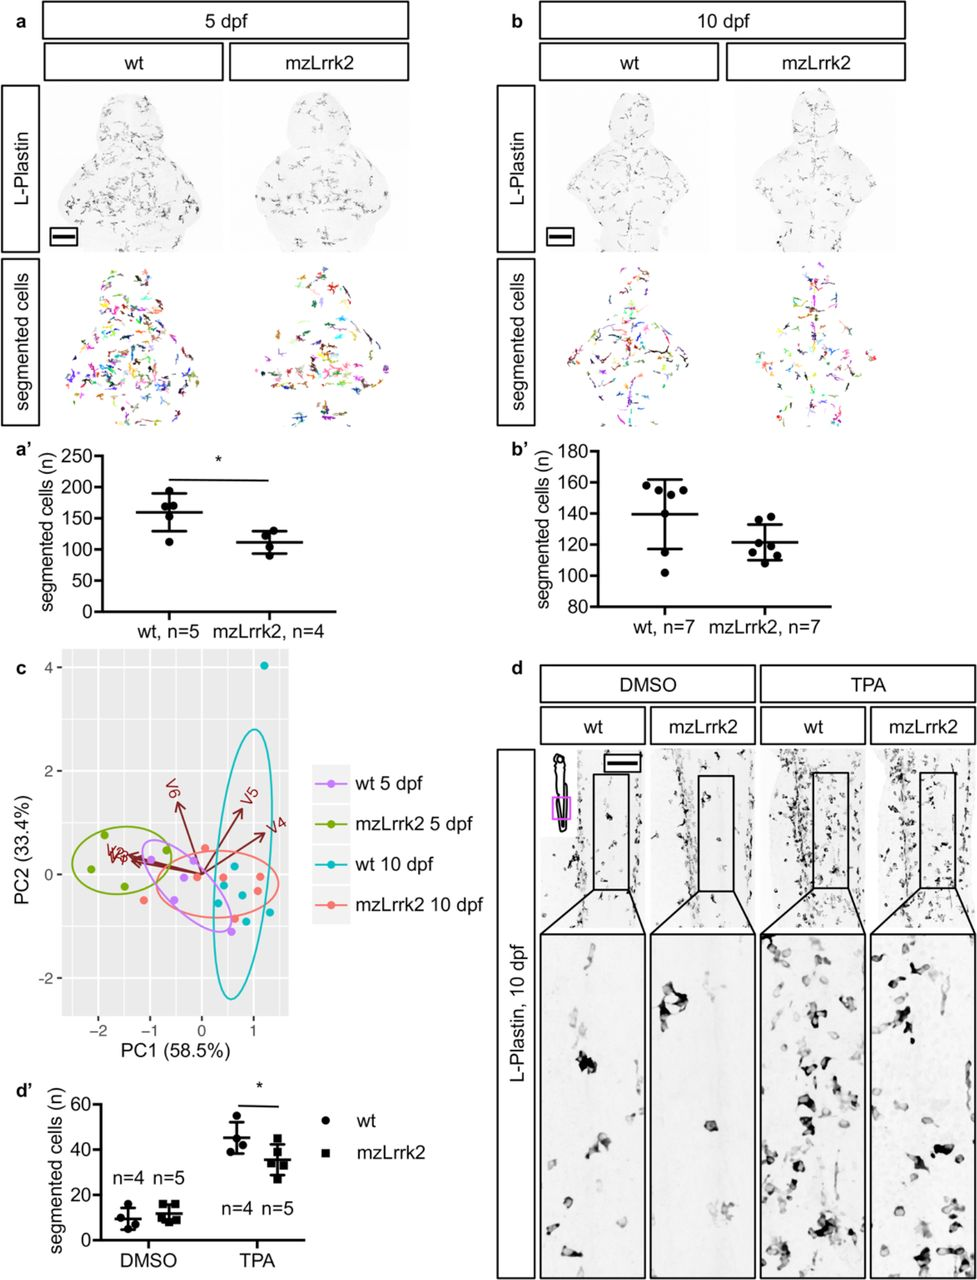 Loss of lrrk2 impairs dopamine catabolism, cell proliferation, and